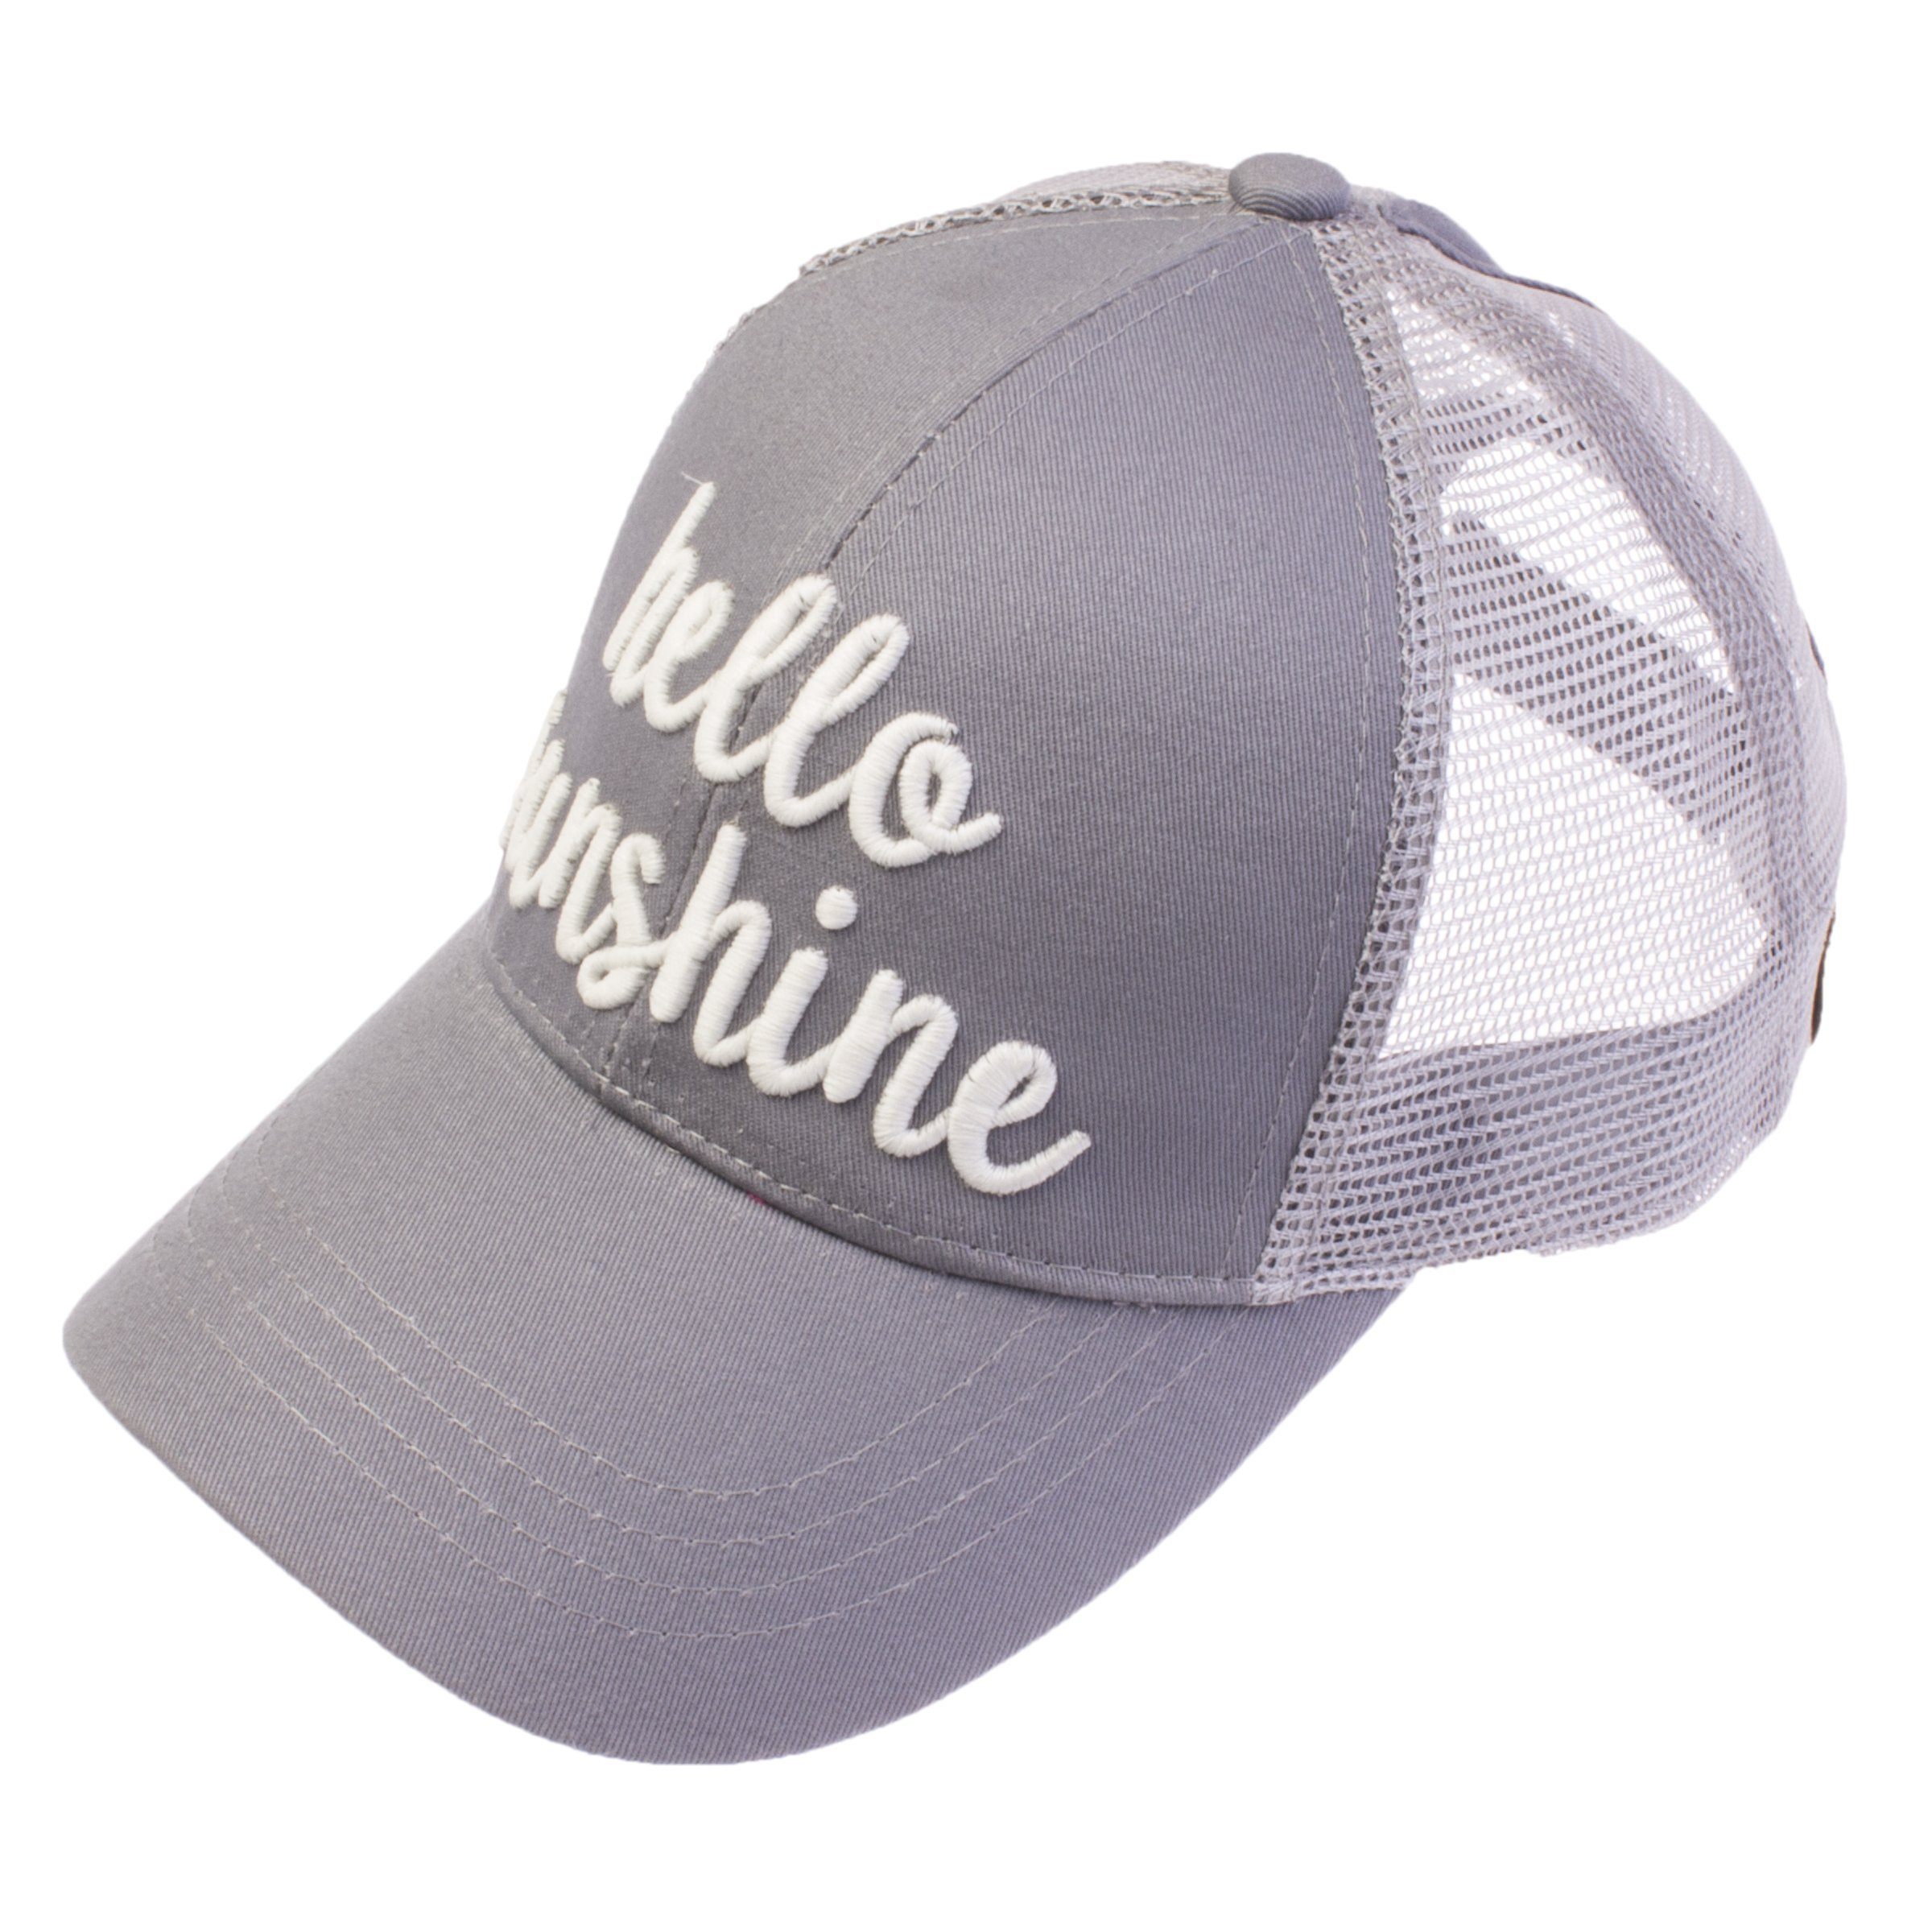 C.C Exclusives Pony Cap with 3D Embroidered Color Changing Trucker Cap (BT-10) (Grey, Hello Sunshine)